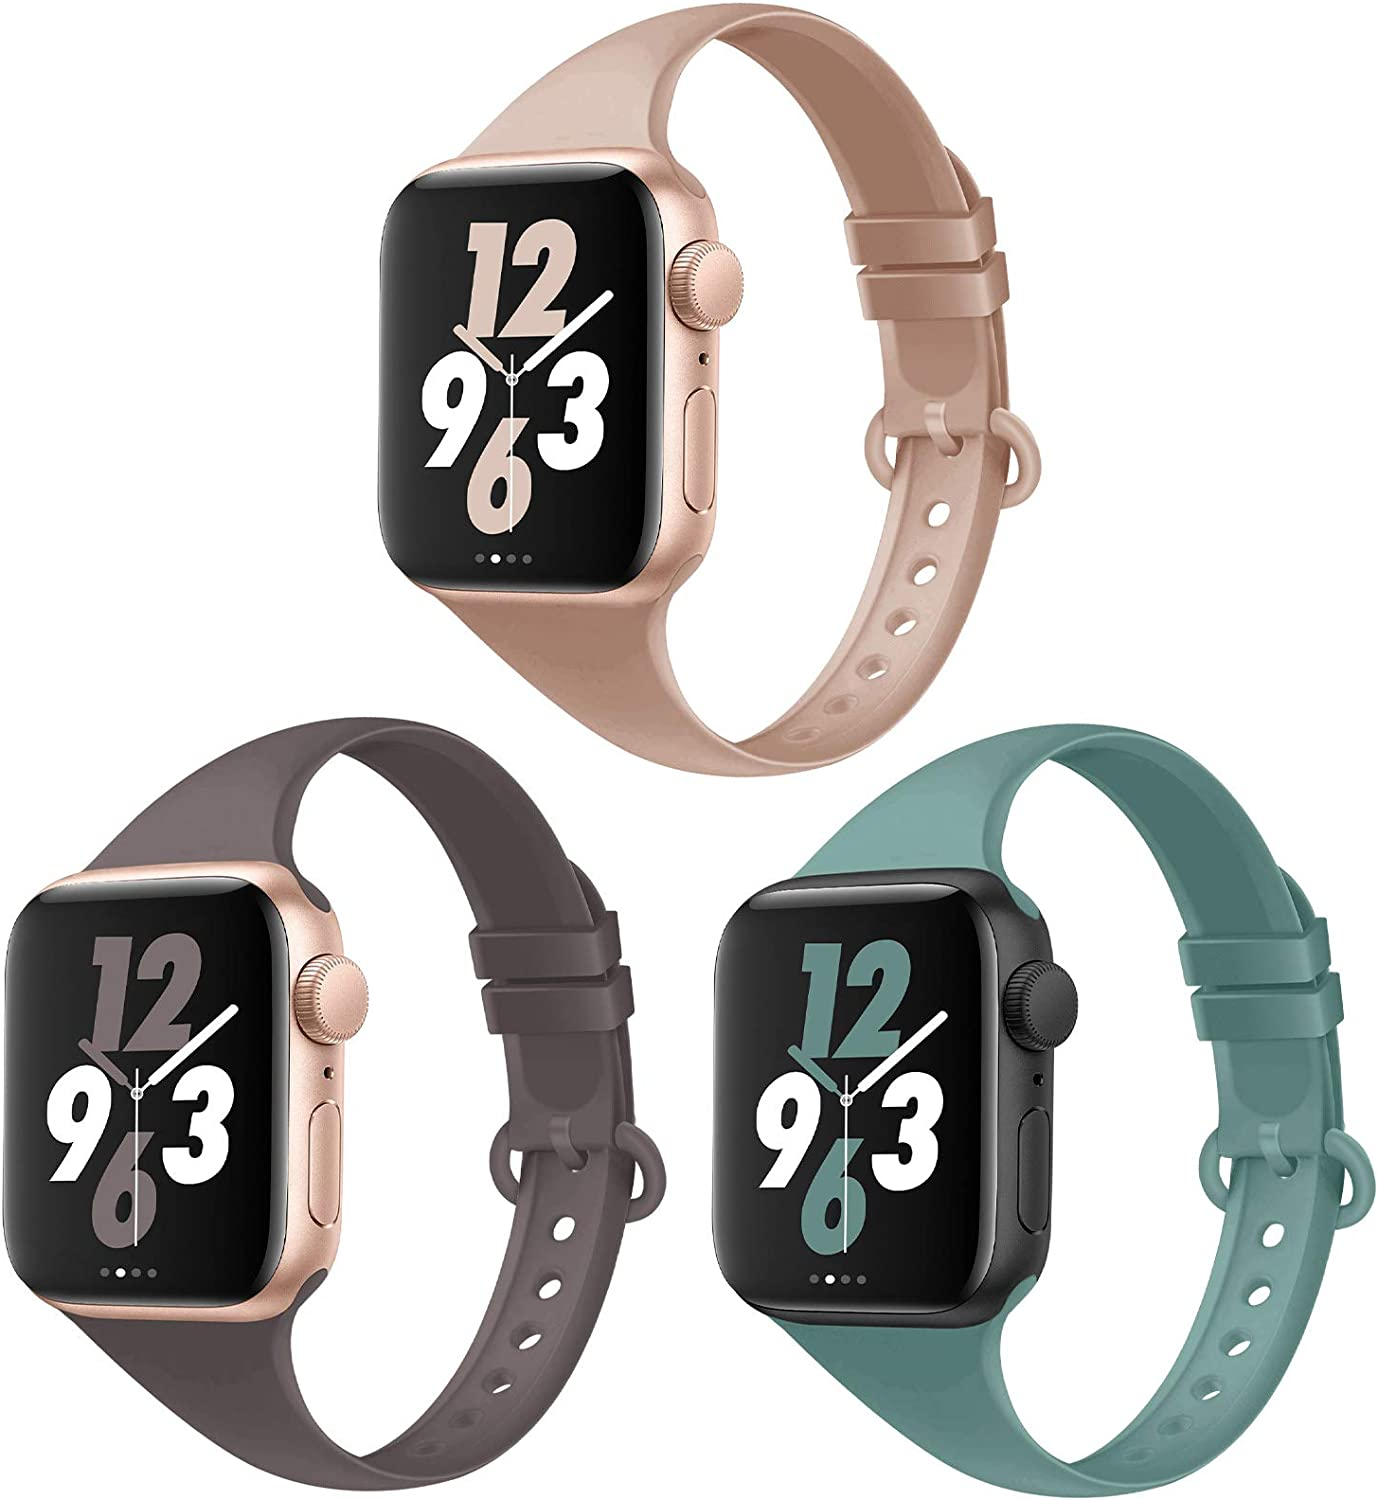 Acrbiutu Bands Compatible with Apple Watch 38mm 40mm 42mm 44mm, 3 Pack Thin Slim Narrow Replacement Soft Silicone Sport Accessory Strap Wristband for iWatch SE Series 6/5/4/3/2/1 Women Men